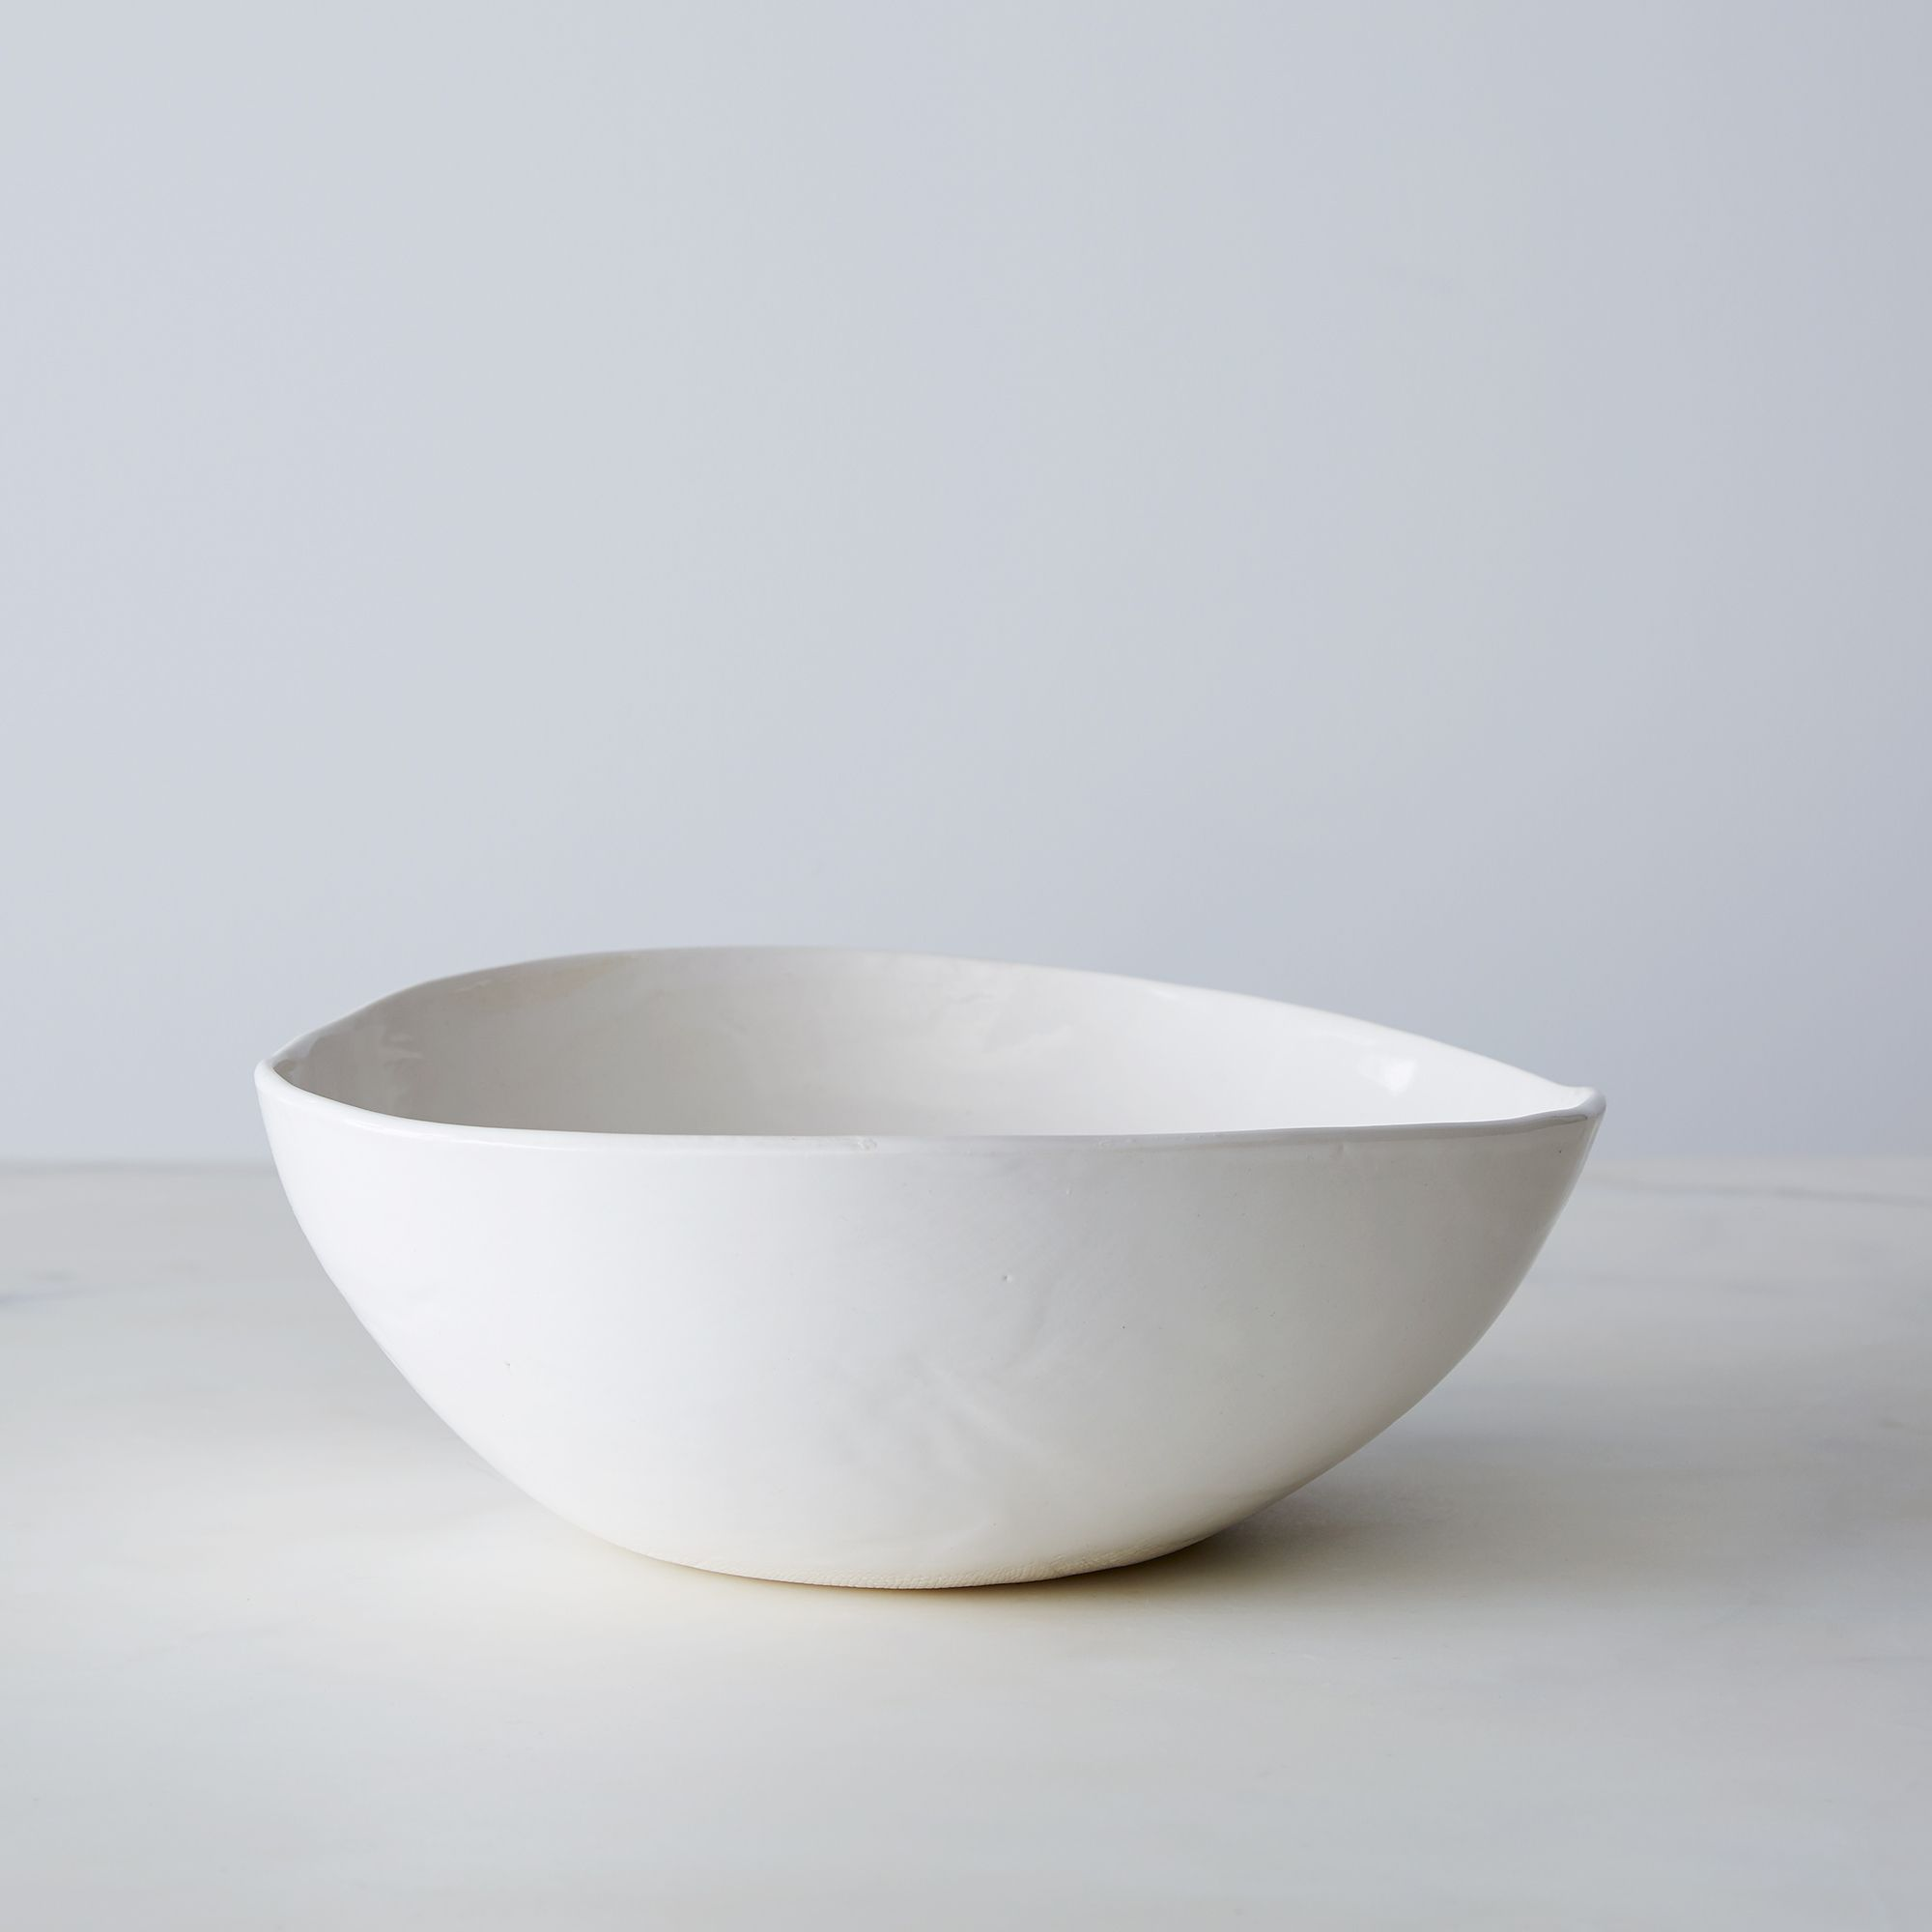 59cd0427 d3e7 407d 94b8 db52a0bd6c14  2015 0323 looks like white handmade salad bowl silo bobbi lin 0012